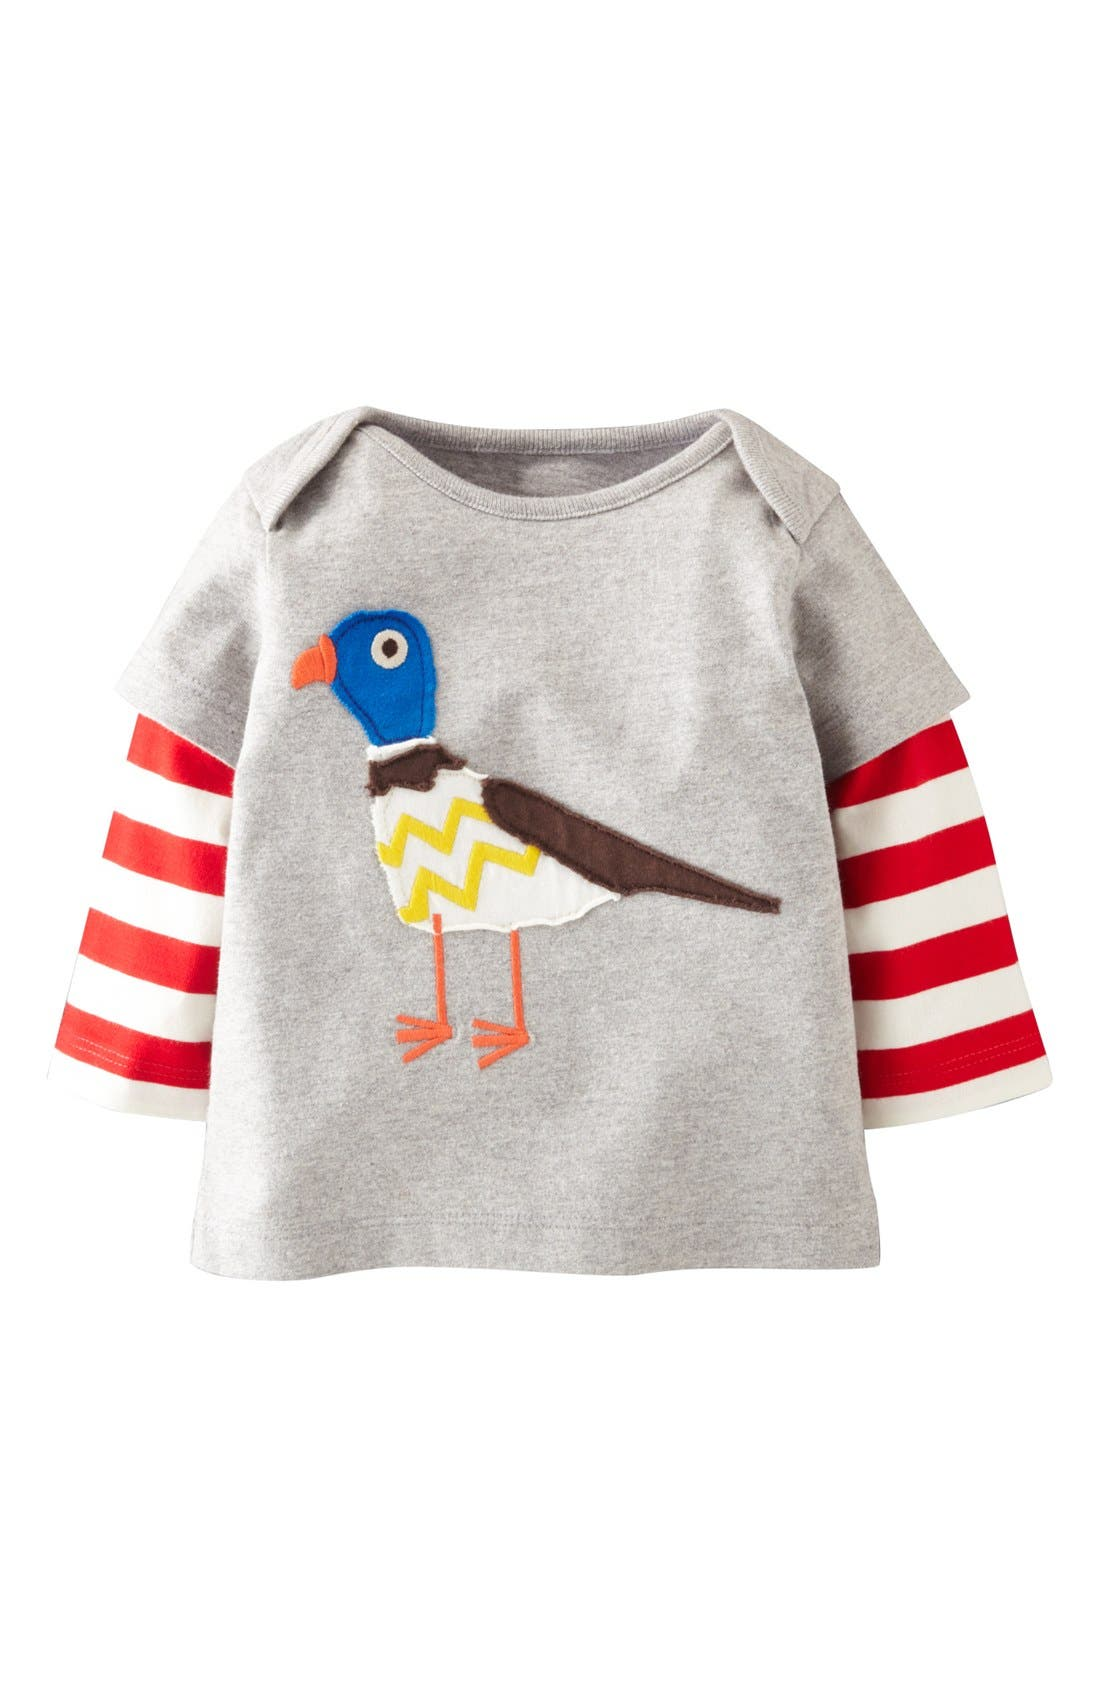 Main Image - Mini Boden 'London' Appliqué Layered Sleeve T-Shirt (Baby Boys)